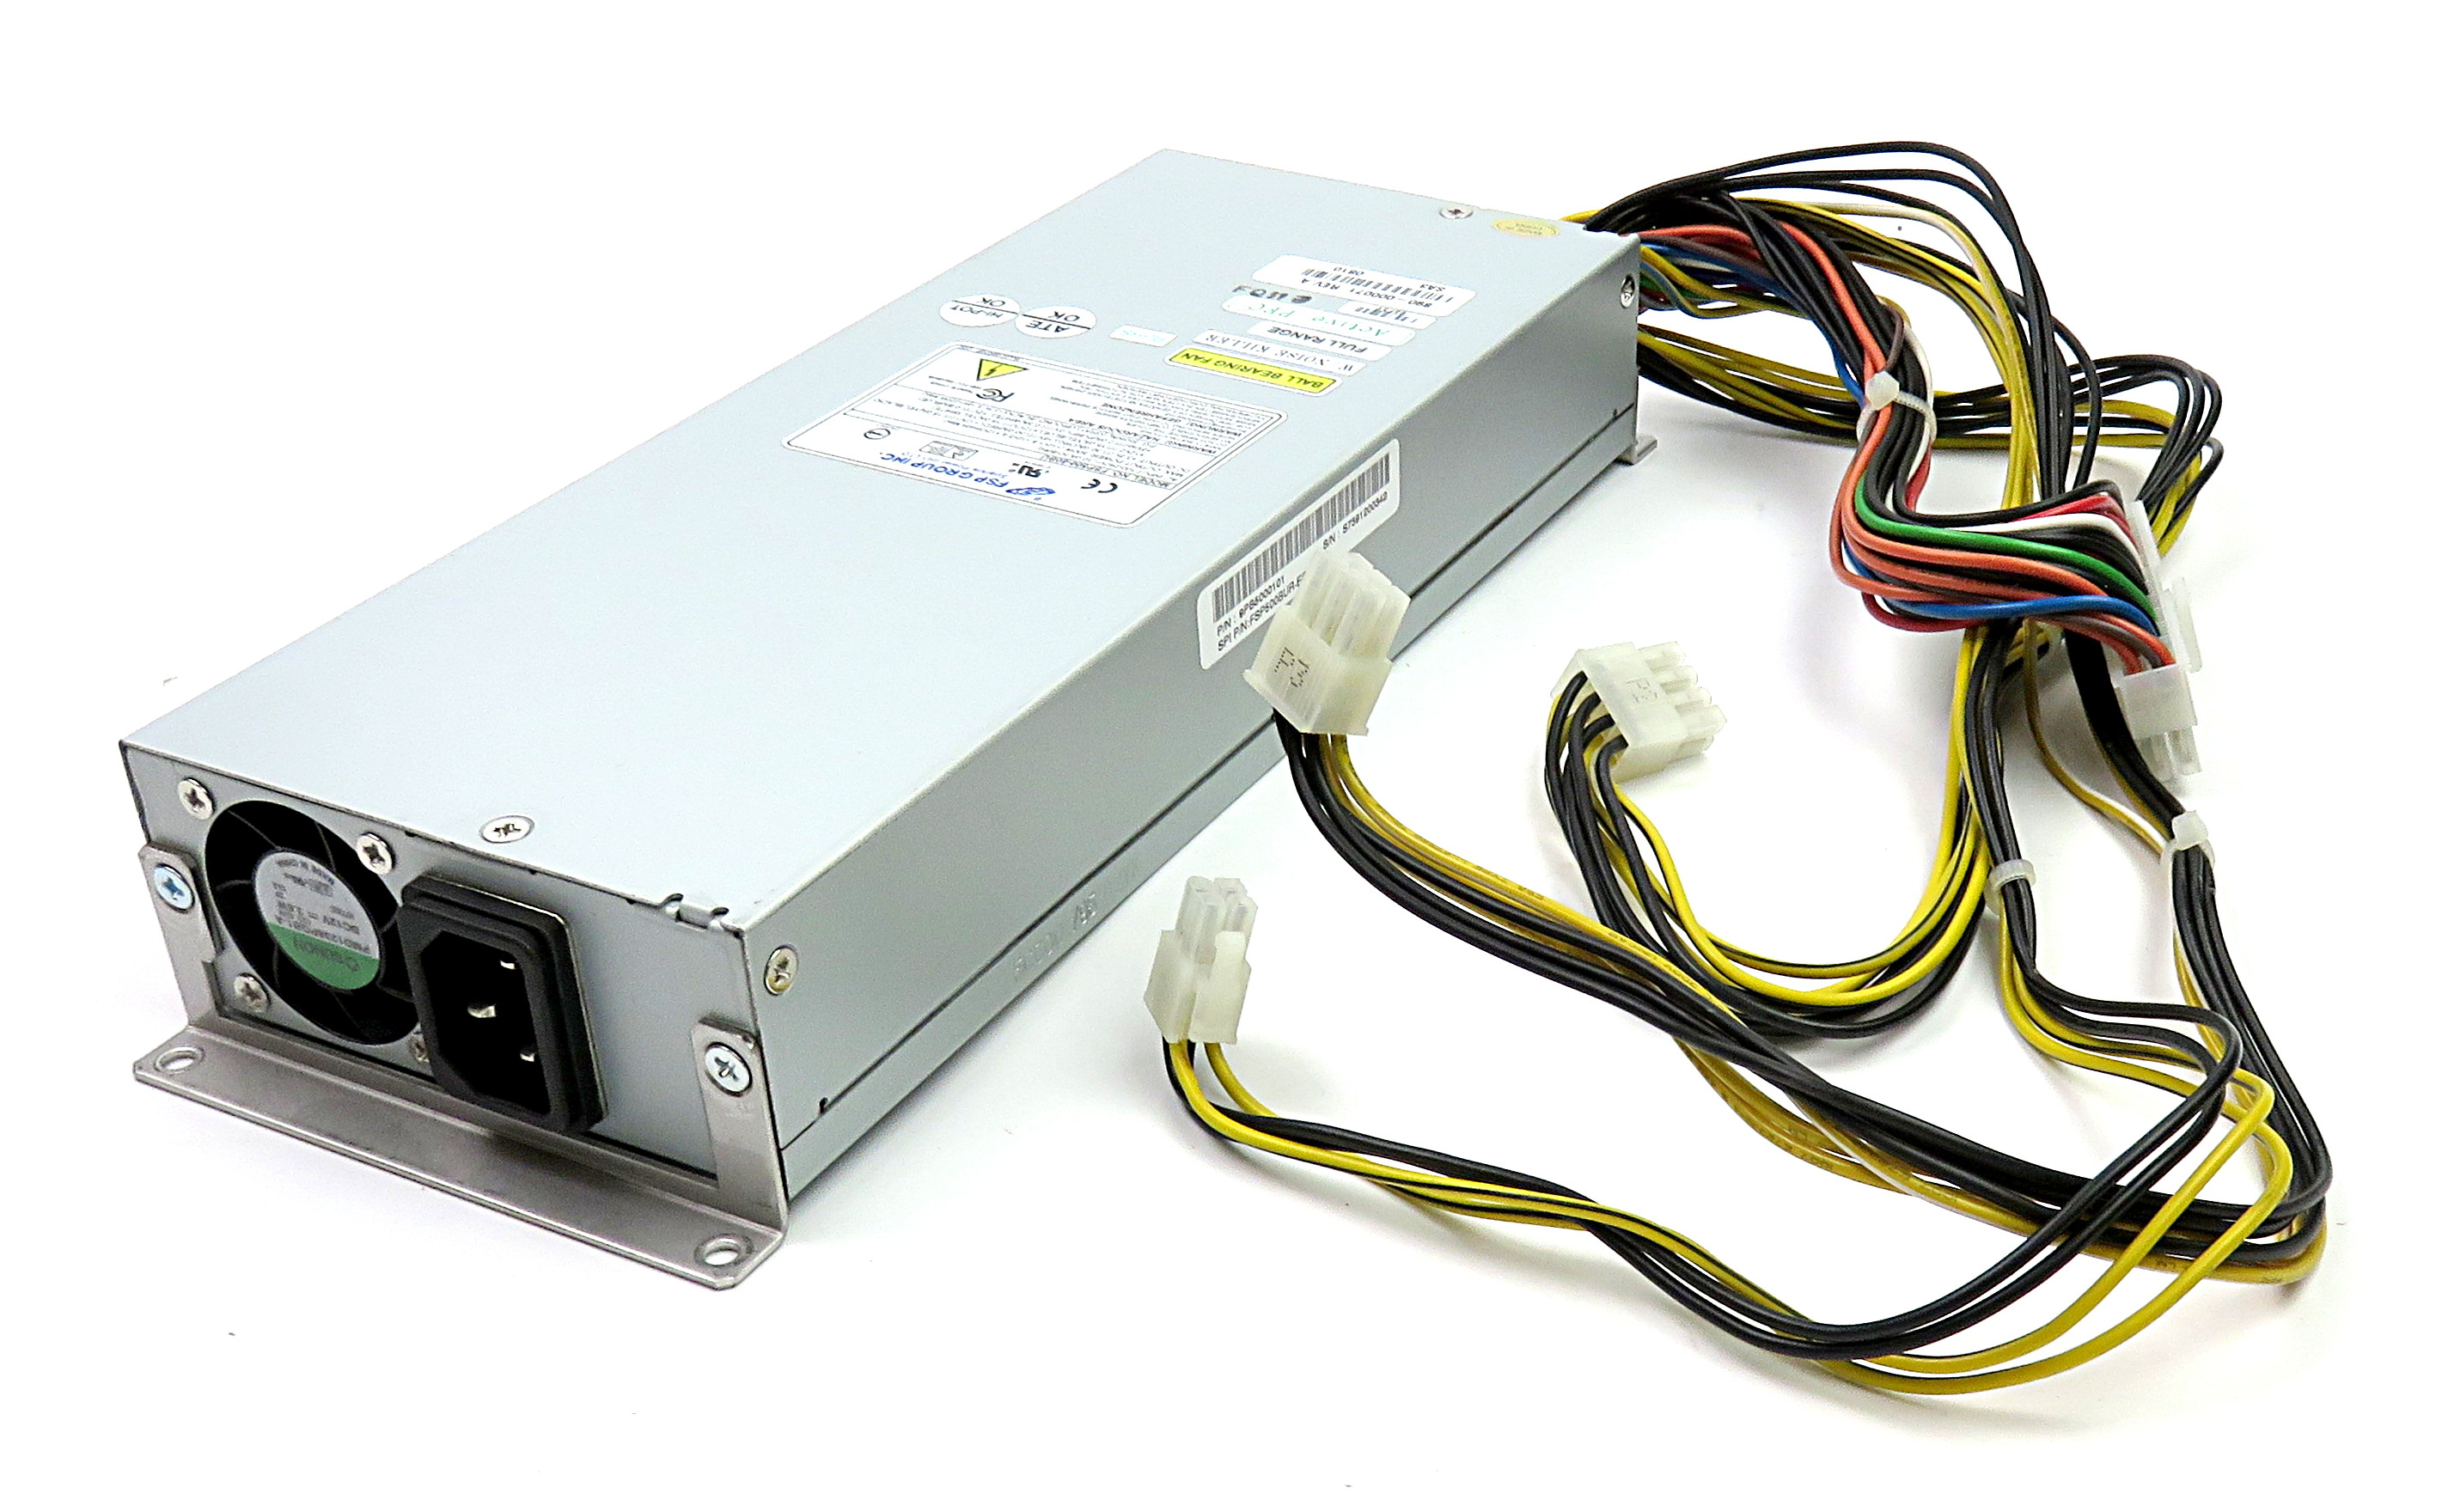 FSP Group FSP500-80BU 500W 1U Power Supply 9PB5000101 FSP500BUR-EGE